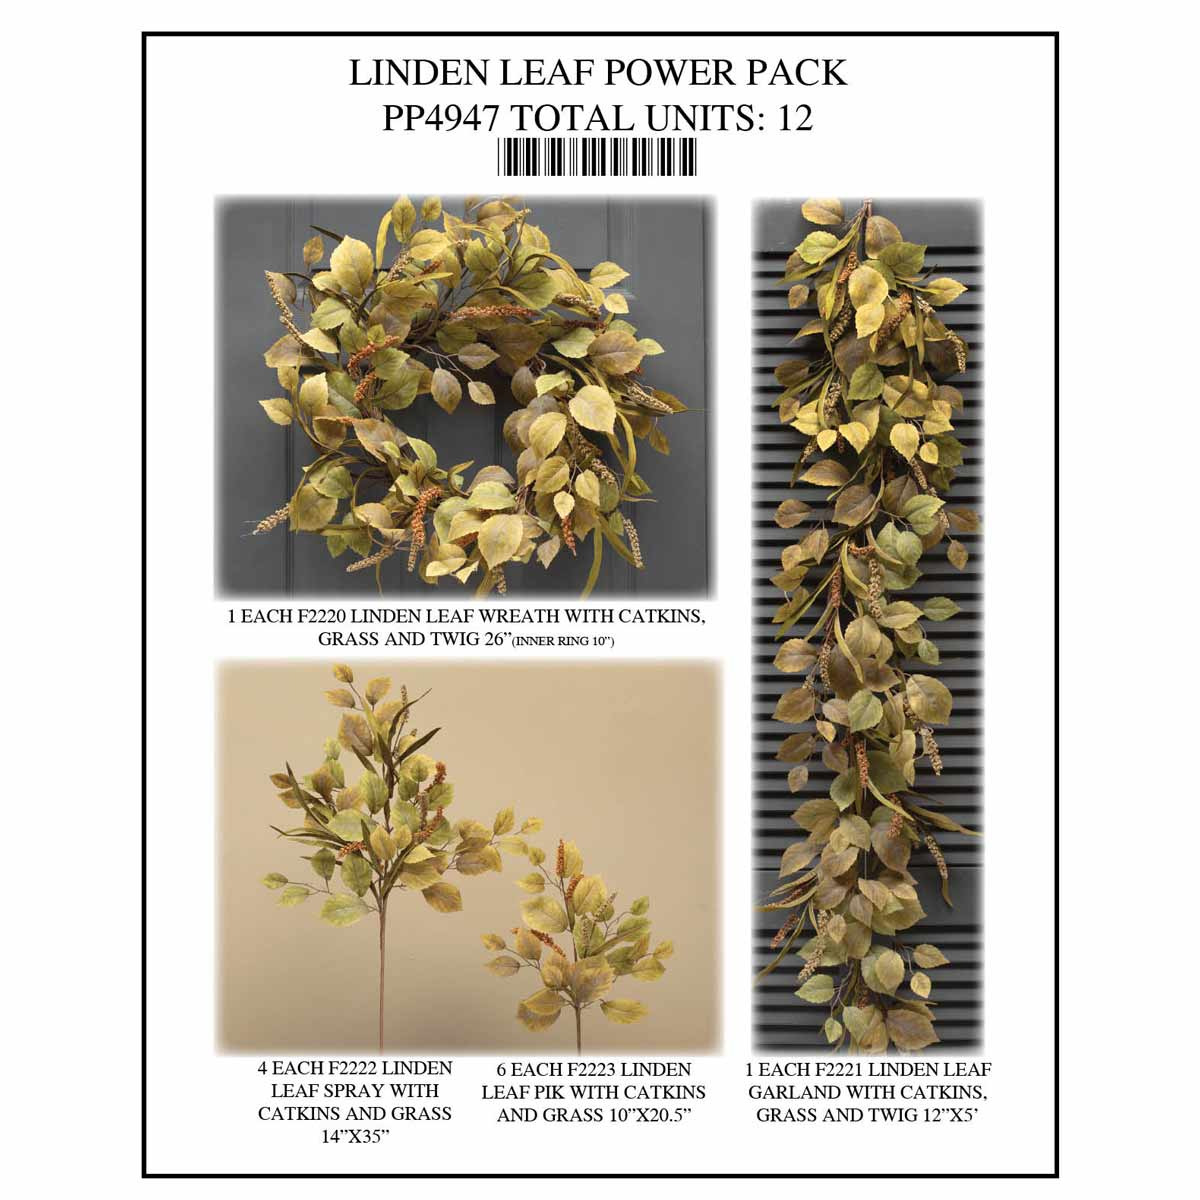 LINDEN LEAF POWER PACK 12 UNITS PP4947